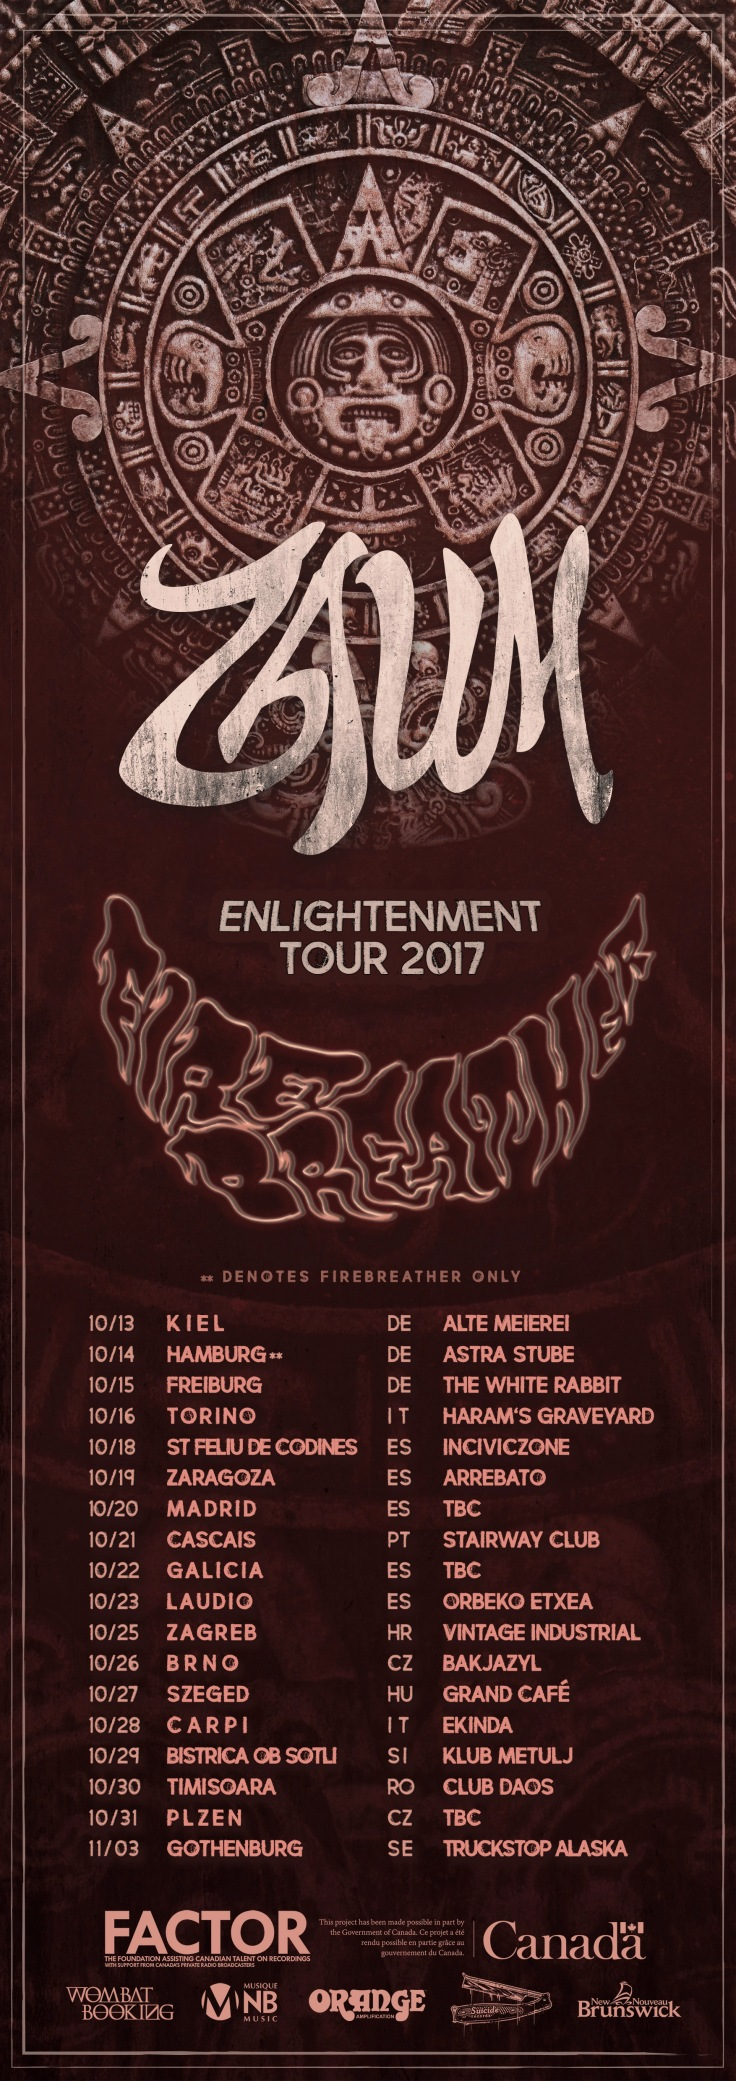 enlightenment-tour-2017-poster-v2-lowres